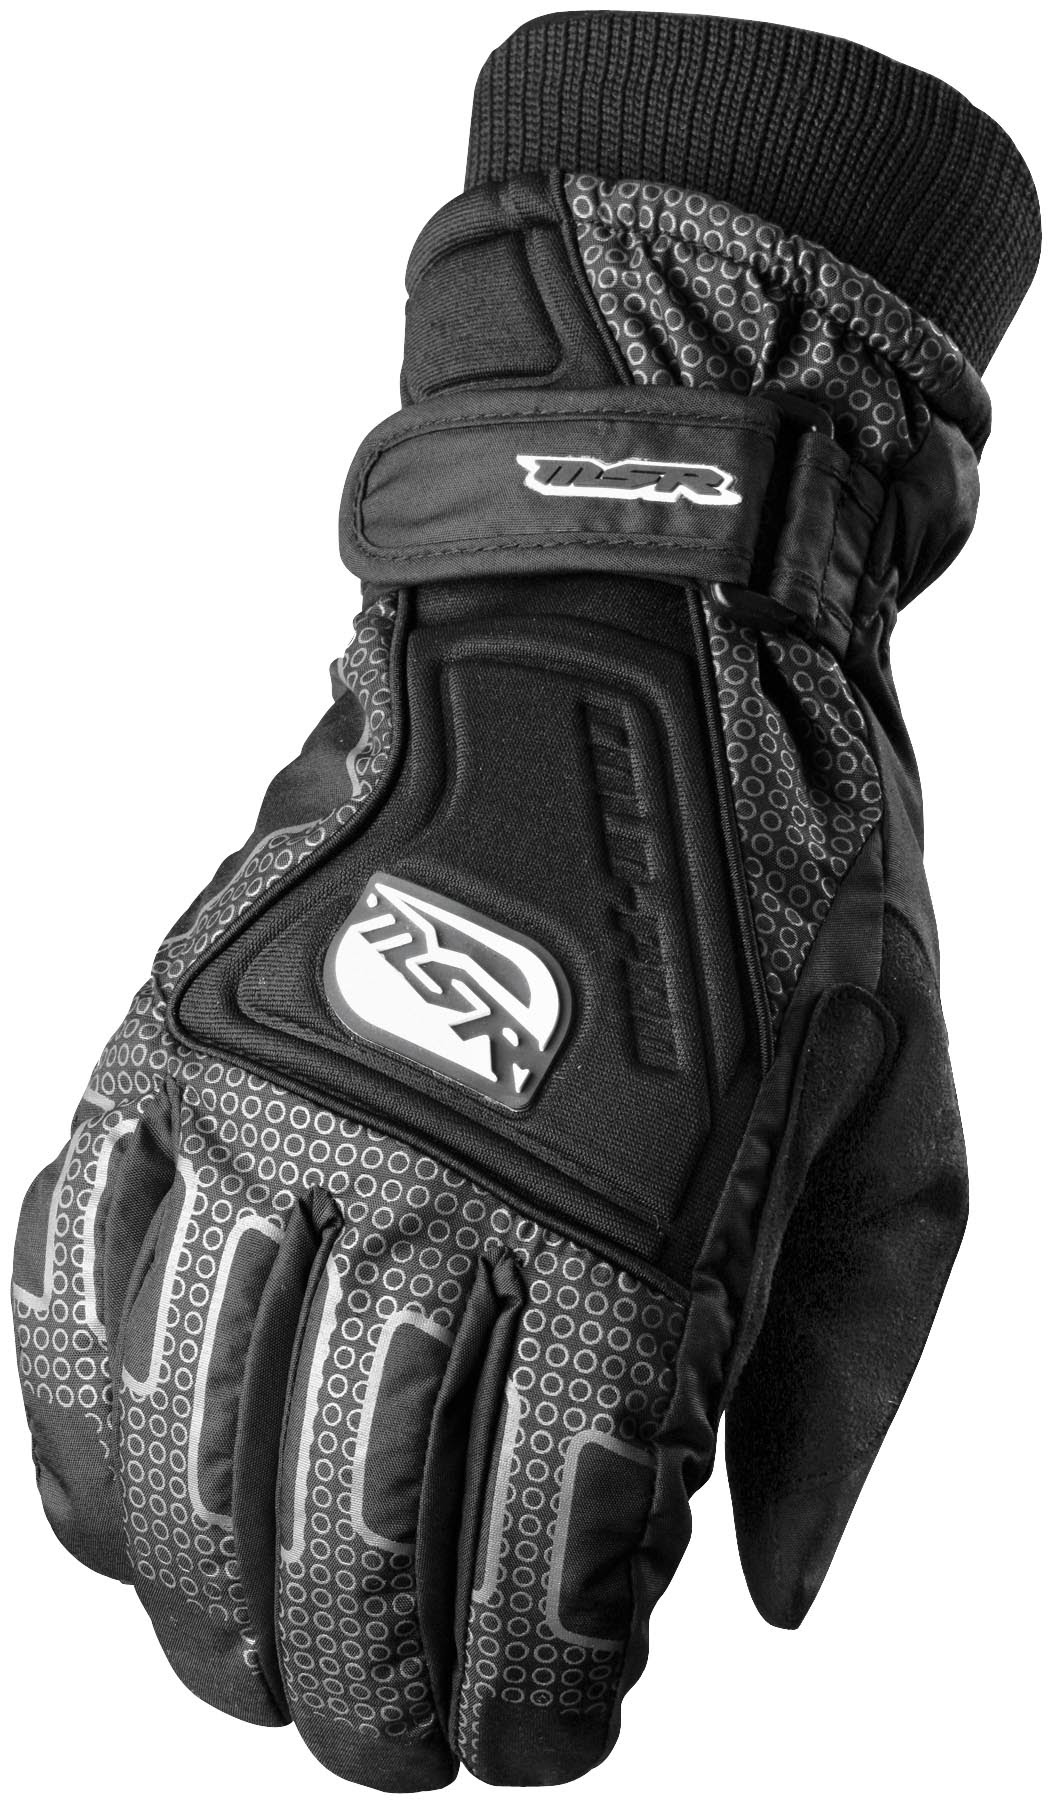 MSR Cold Pro Waterproof Thinsulate Motorcycle Gloves